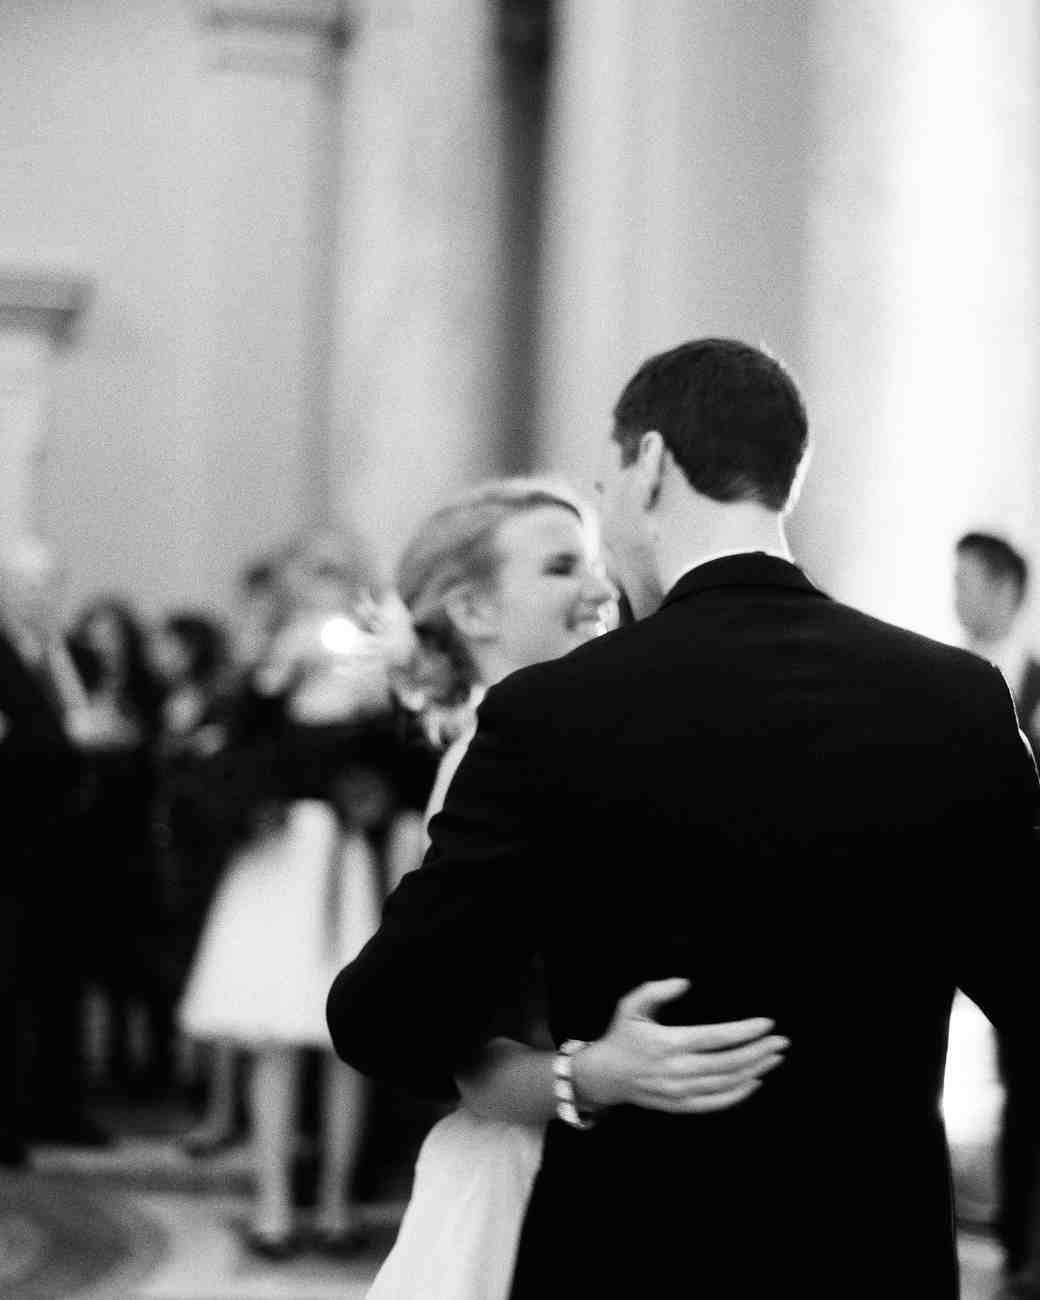 A Formal Christmastime Wedding In Washington, D.C